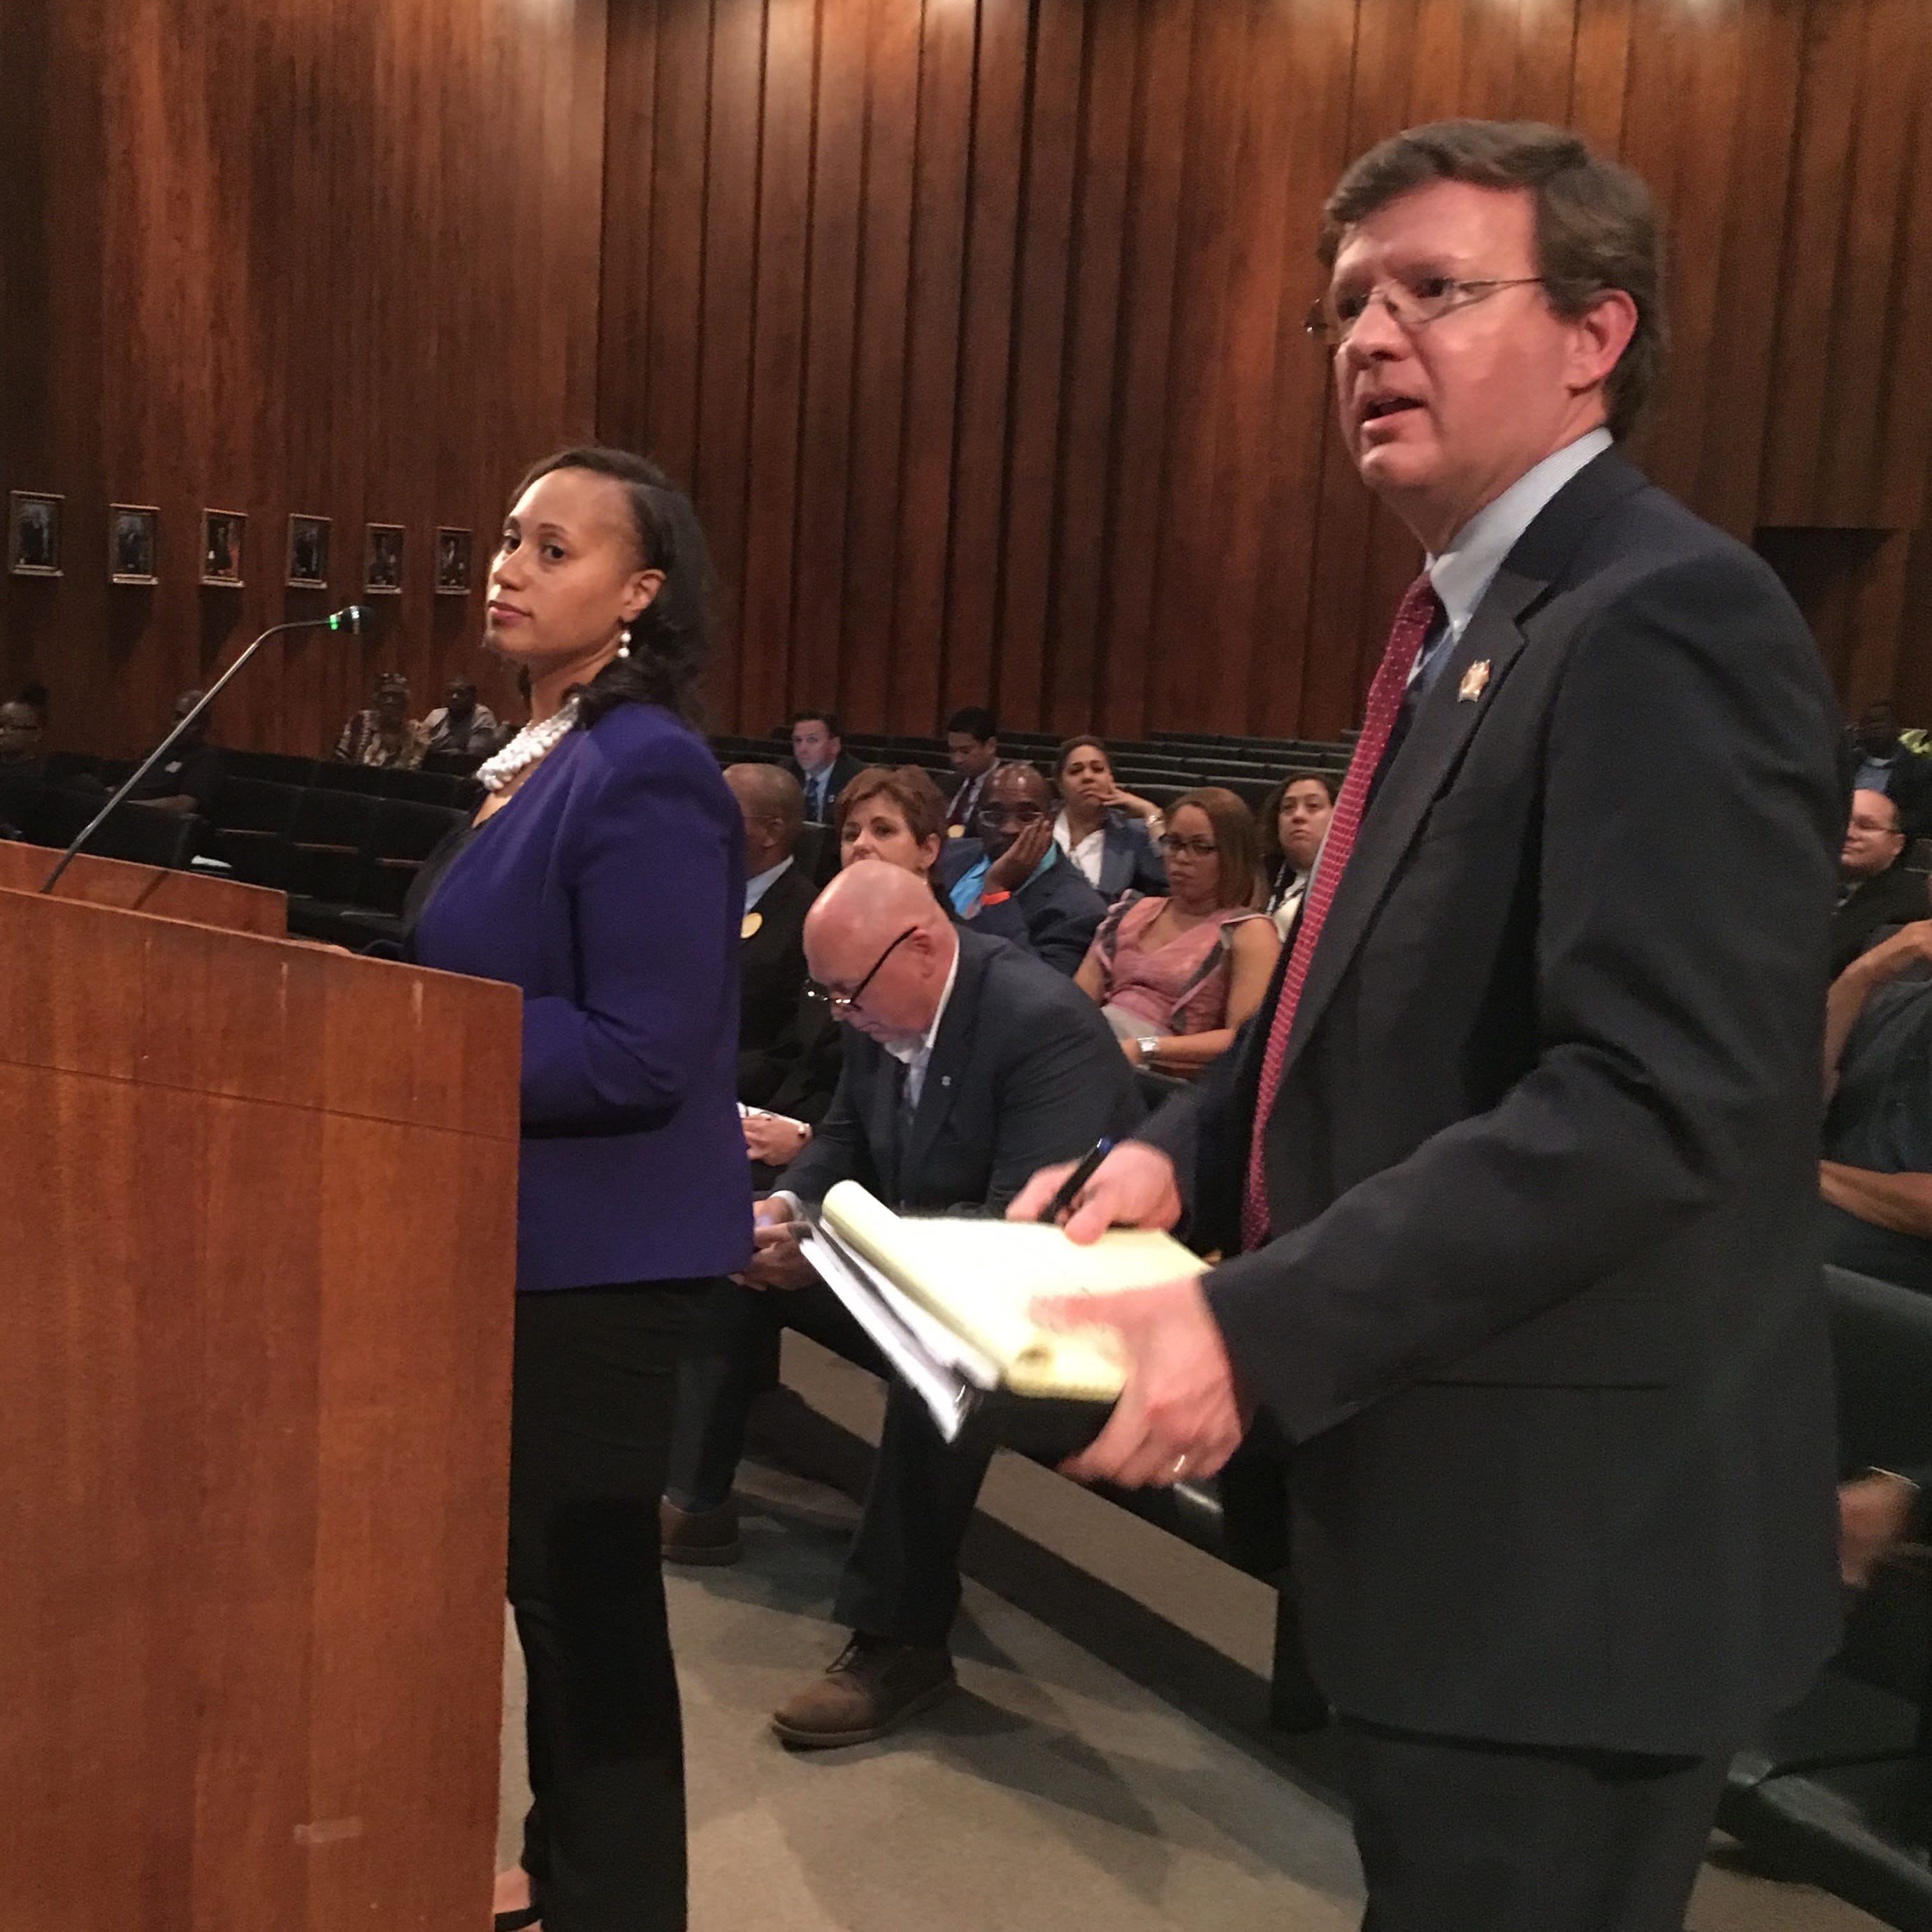 Memphis City Council approves 5% pay raise for police officers, 3.8% for firefighters